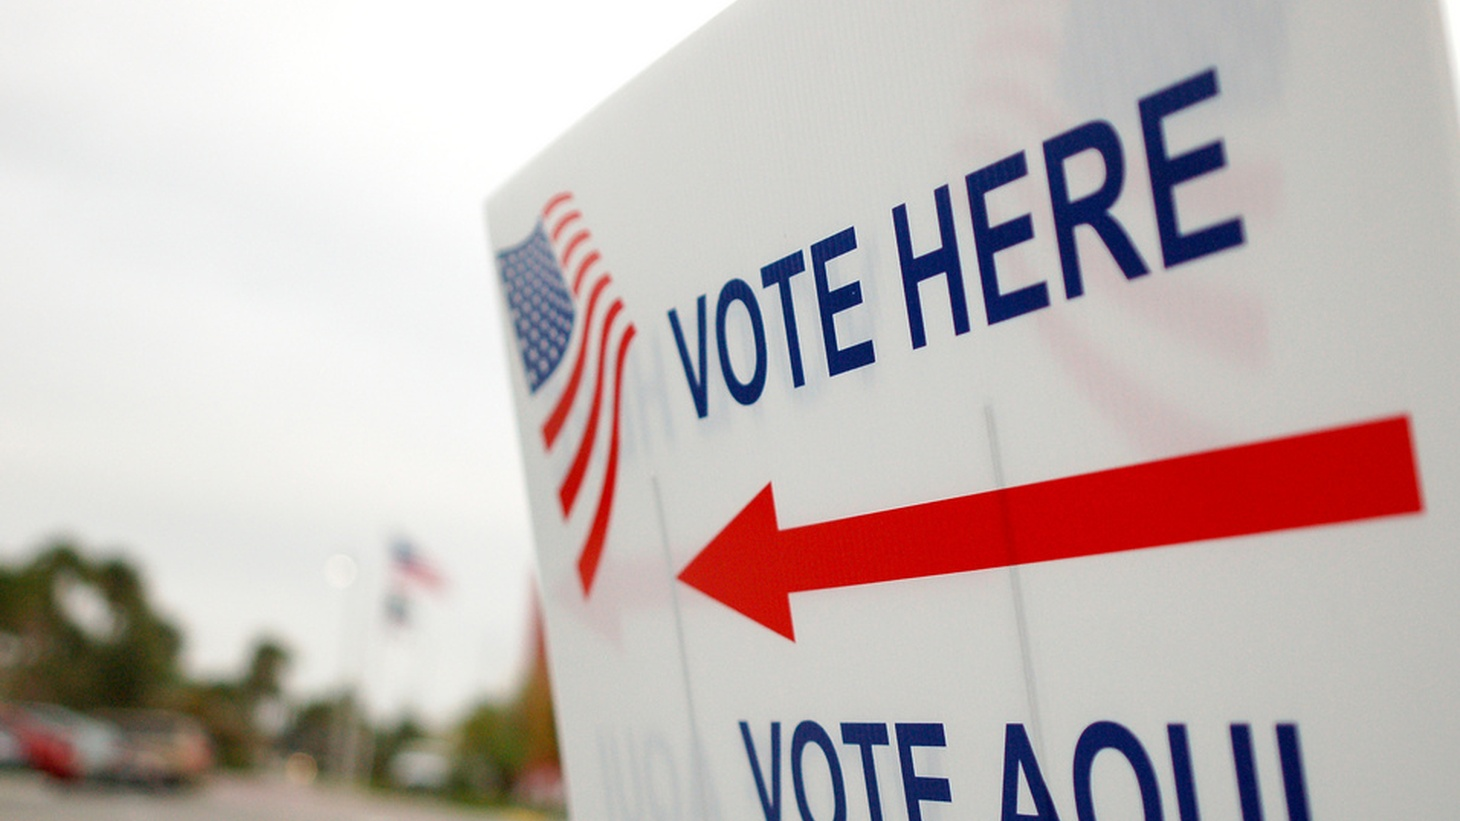 America's Hispanic population is growing so fast that 66,000 Latino Americans turn 18 every month according to the Pew Research Center. Warren Olney looks at the Latino vote and efforts to increase registration in the community.